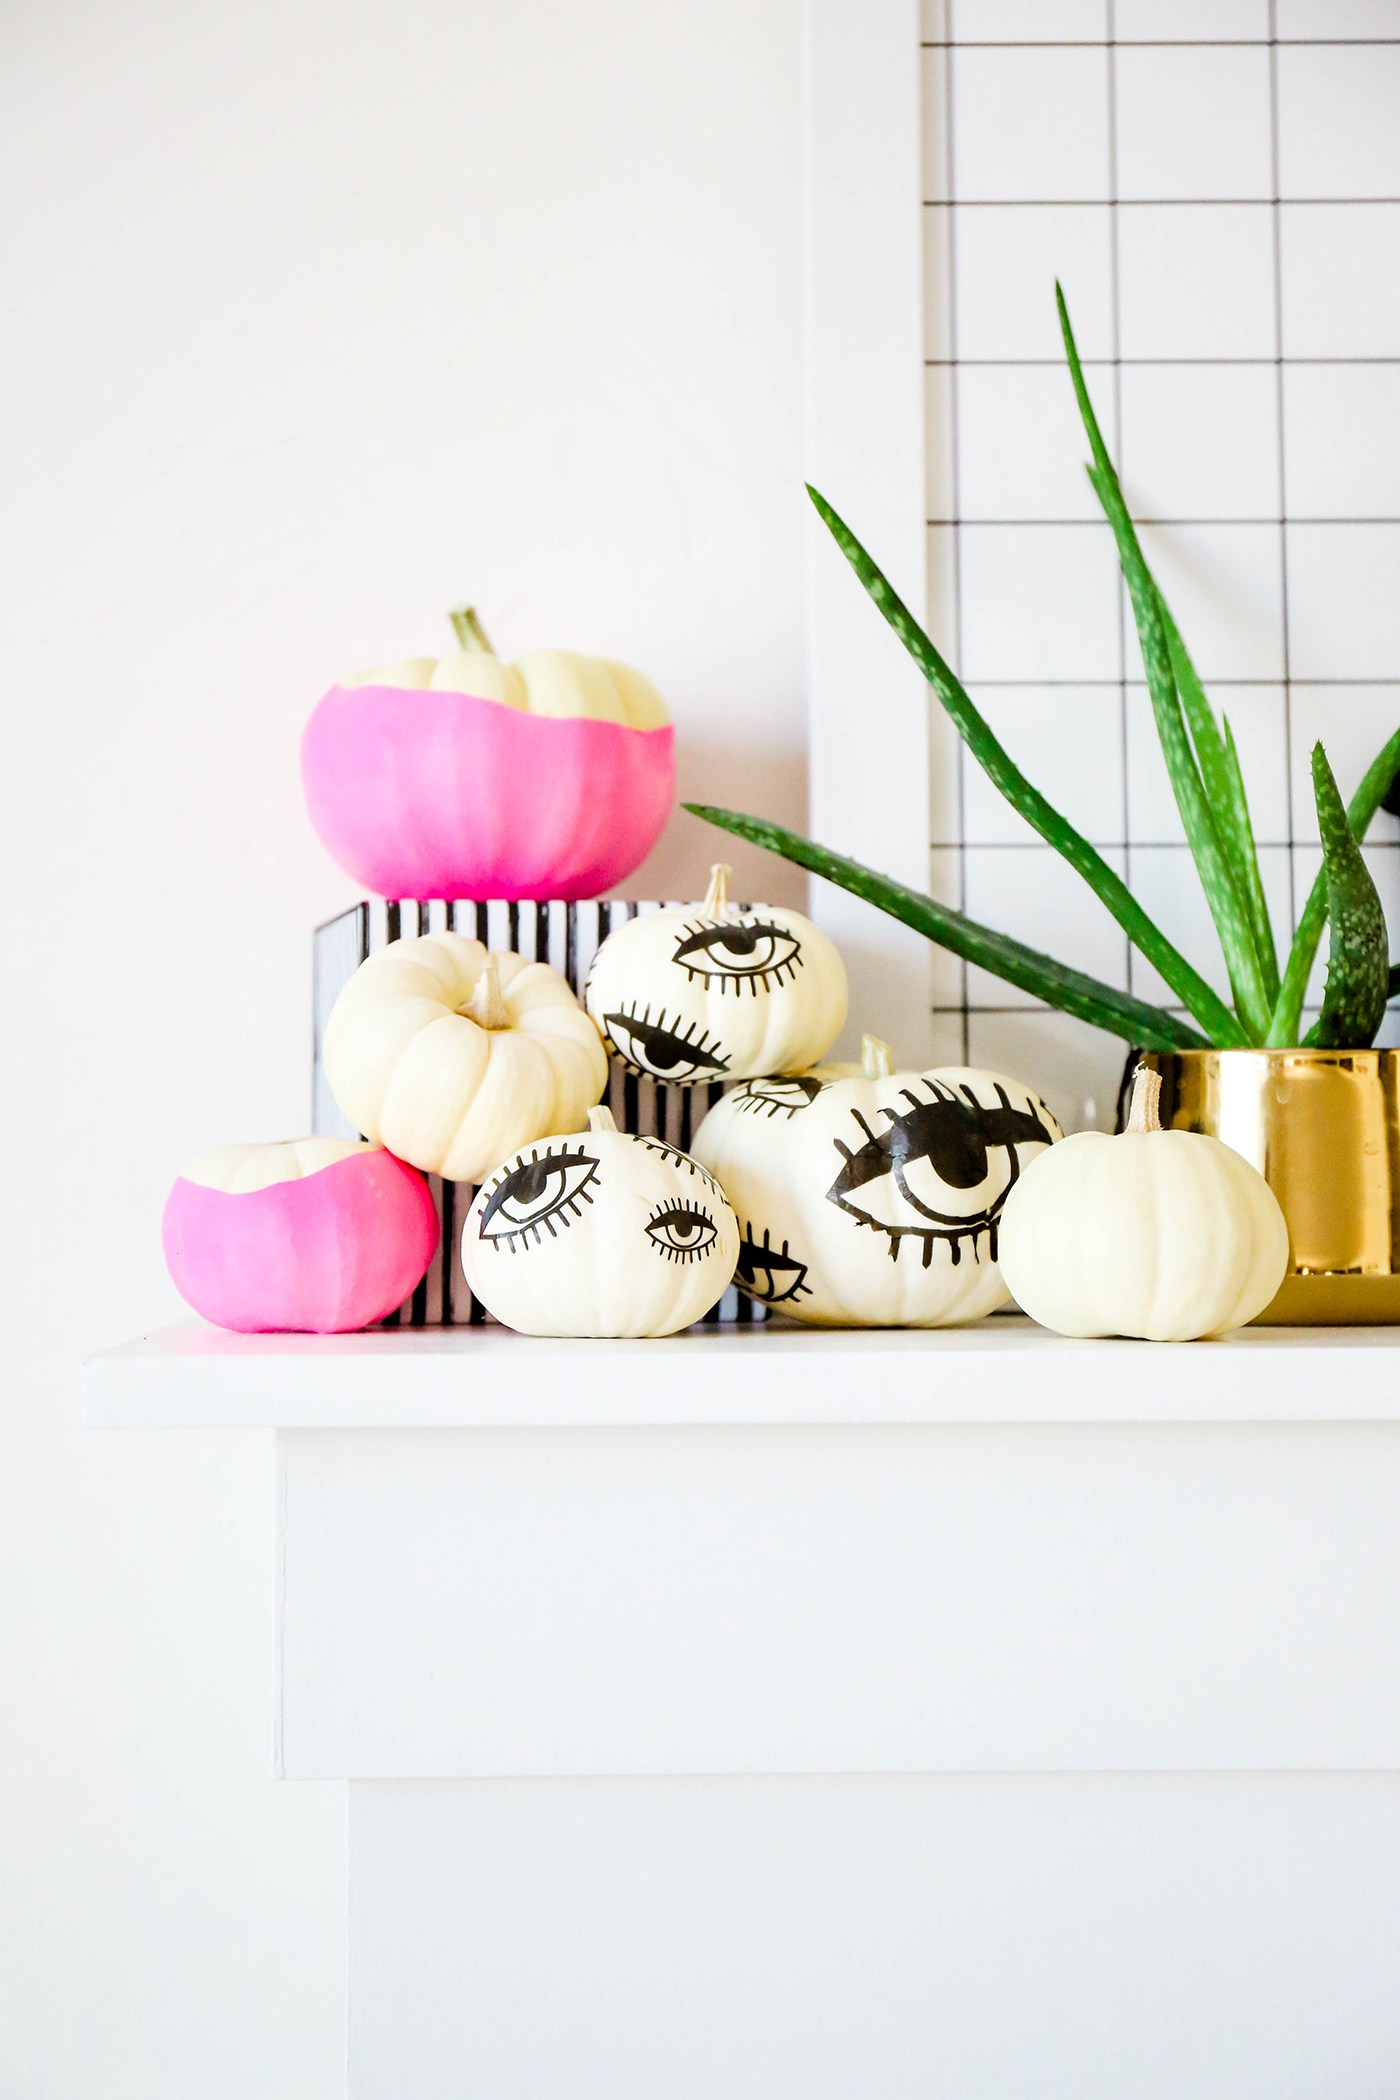 Tattooed pumpkins from Proper